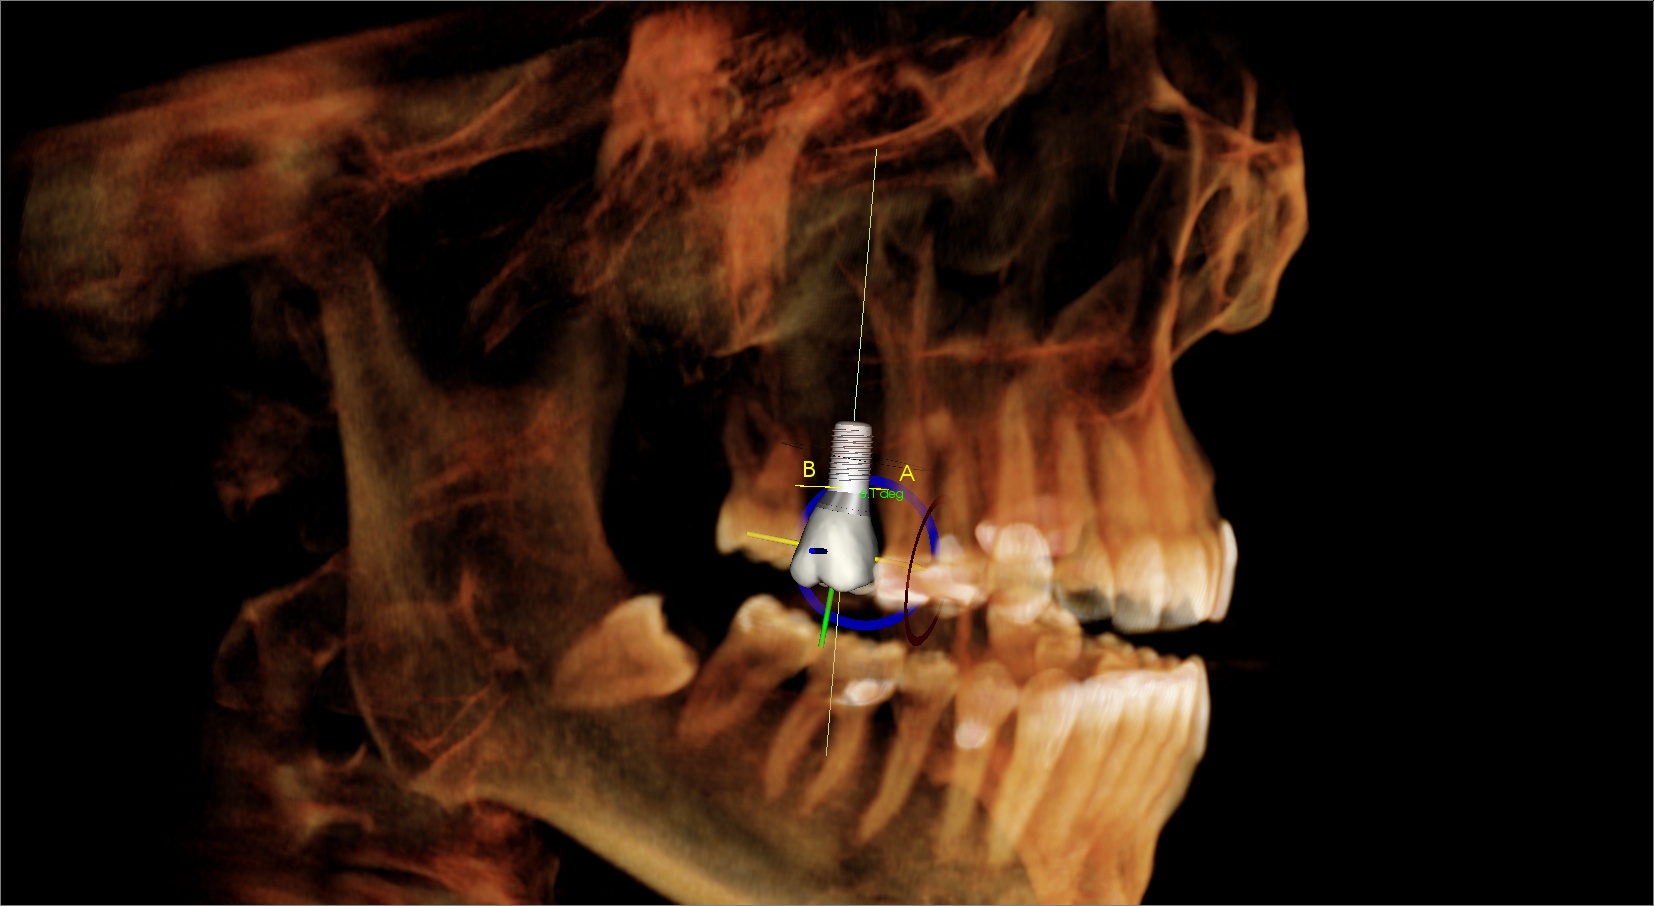 A dental implant scan and proposal